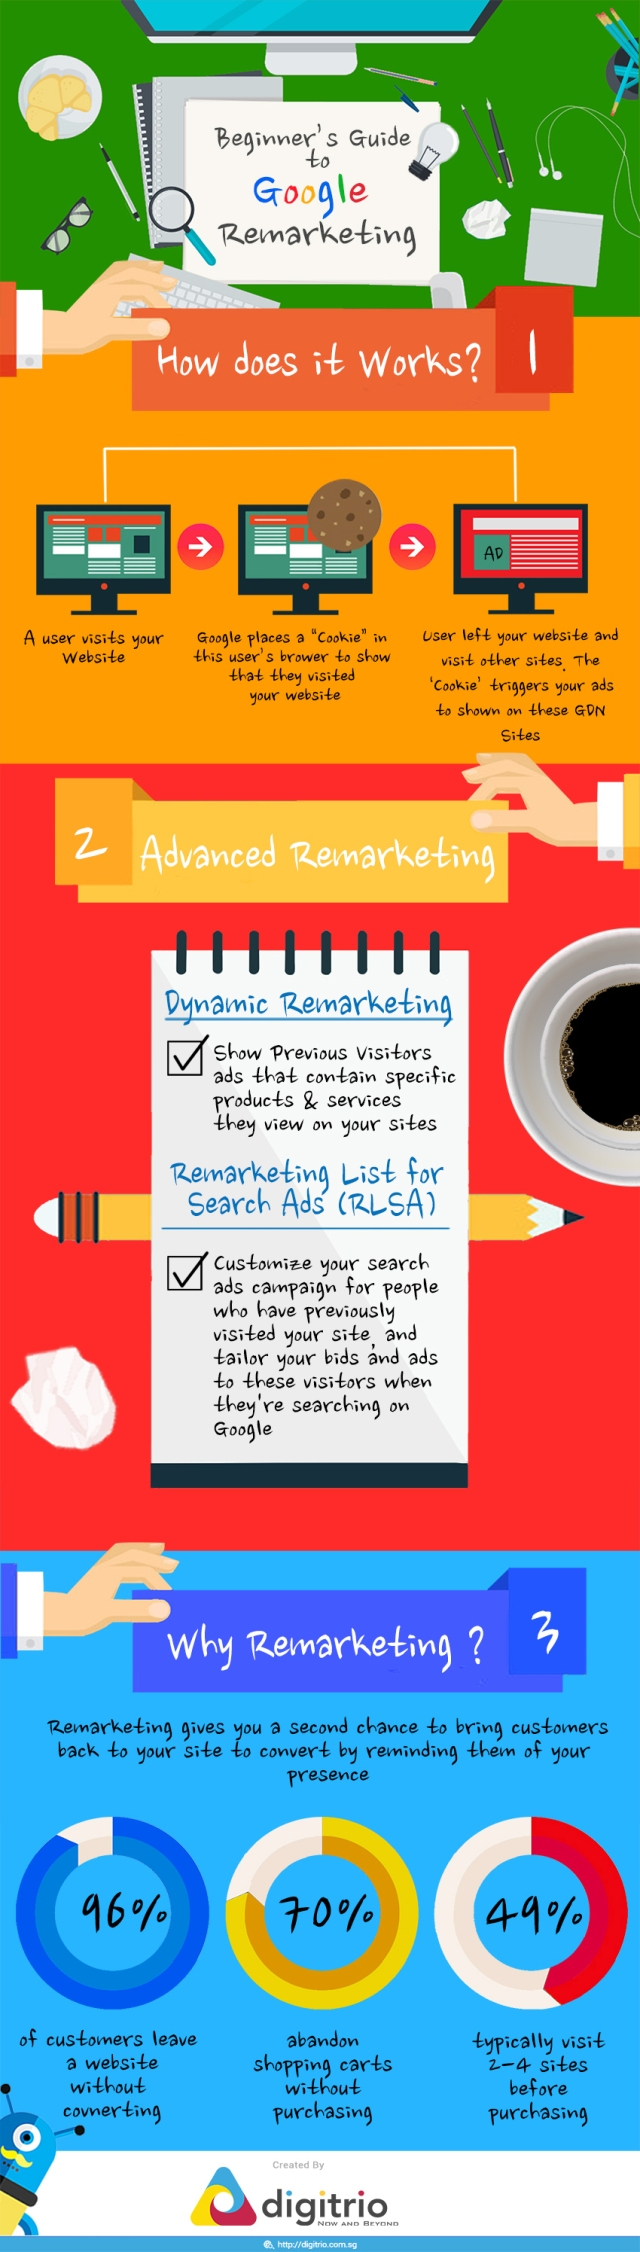 Google Remarketing What It Is and Why You Should Use It